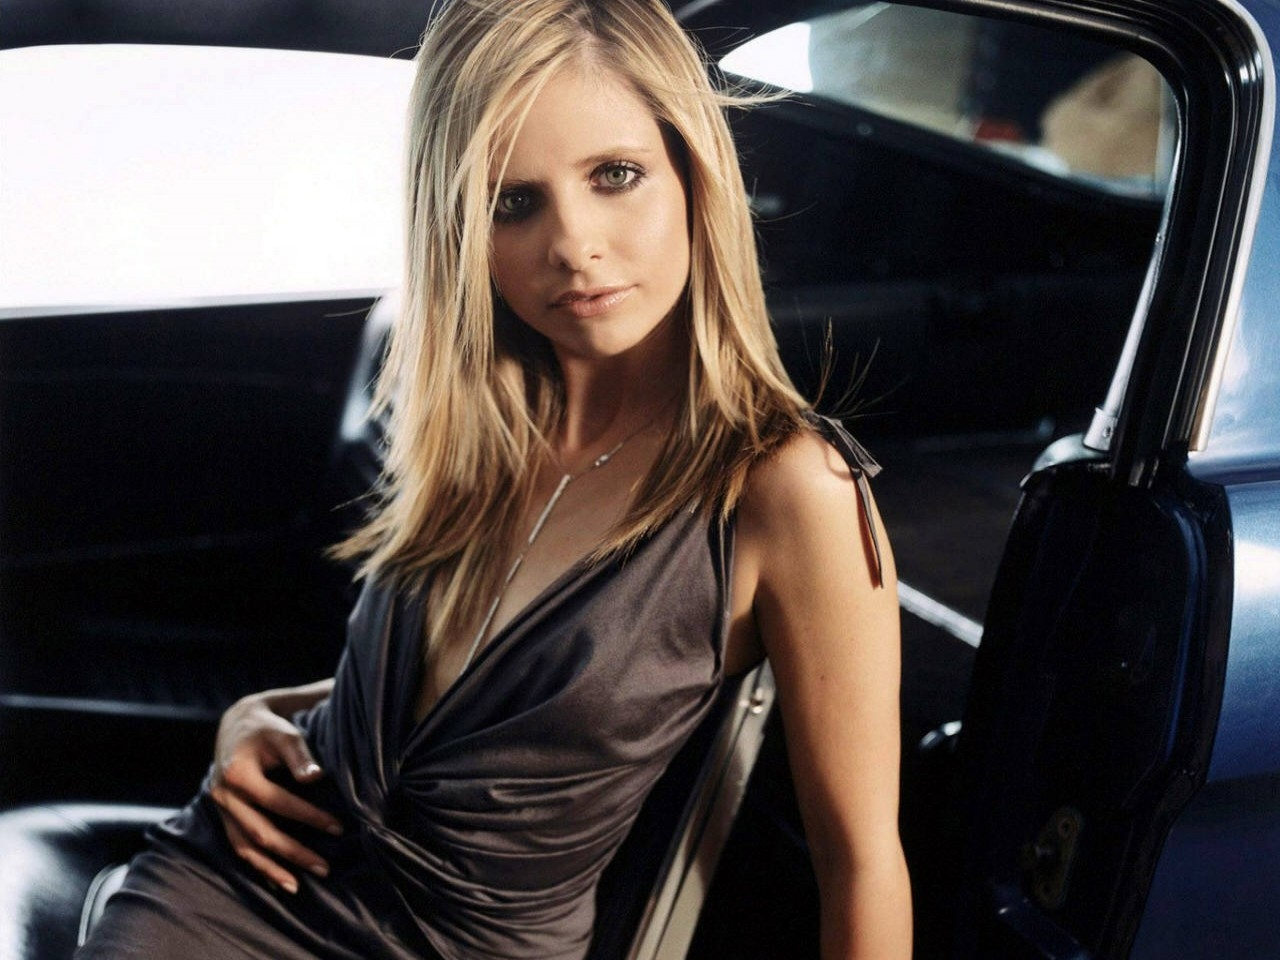 Wallpaper: una seducente Sarah Michelle Gellar